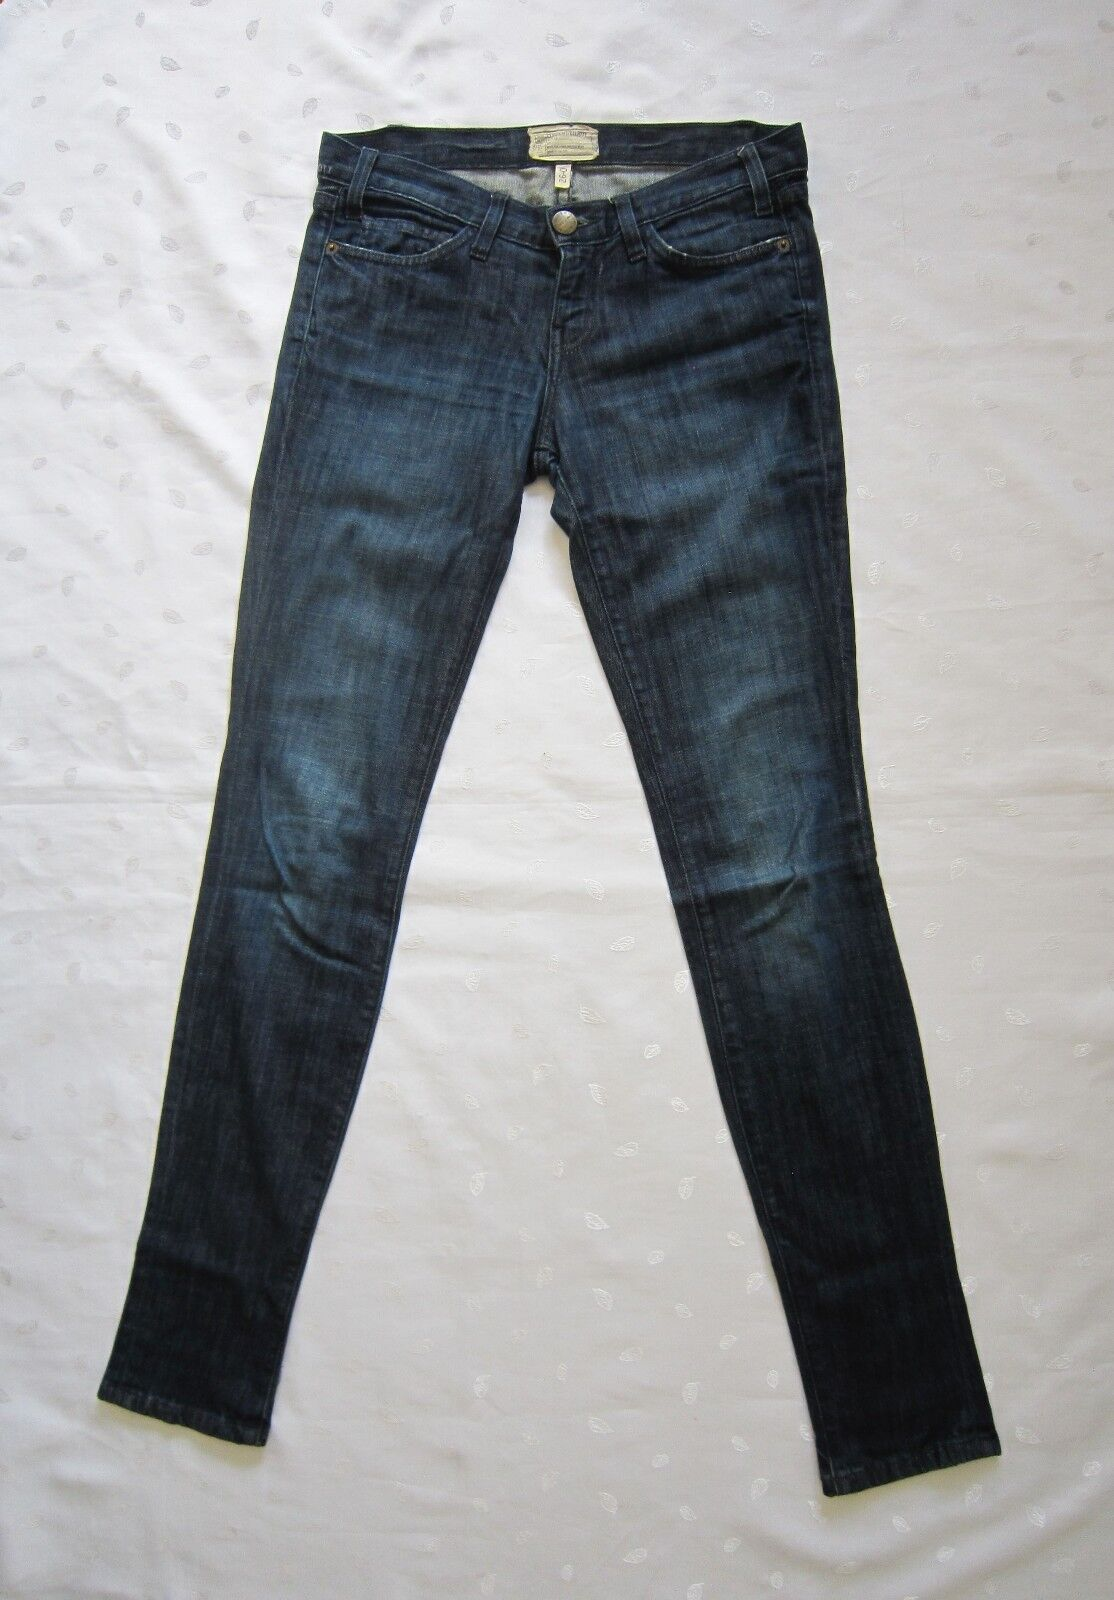 CURRENT   ELLIOTT The Skinny blueEBERRY JAM Dark Wash Denim Skinny Jeans Size 26